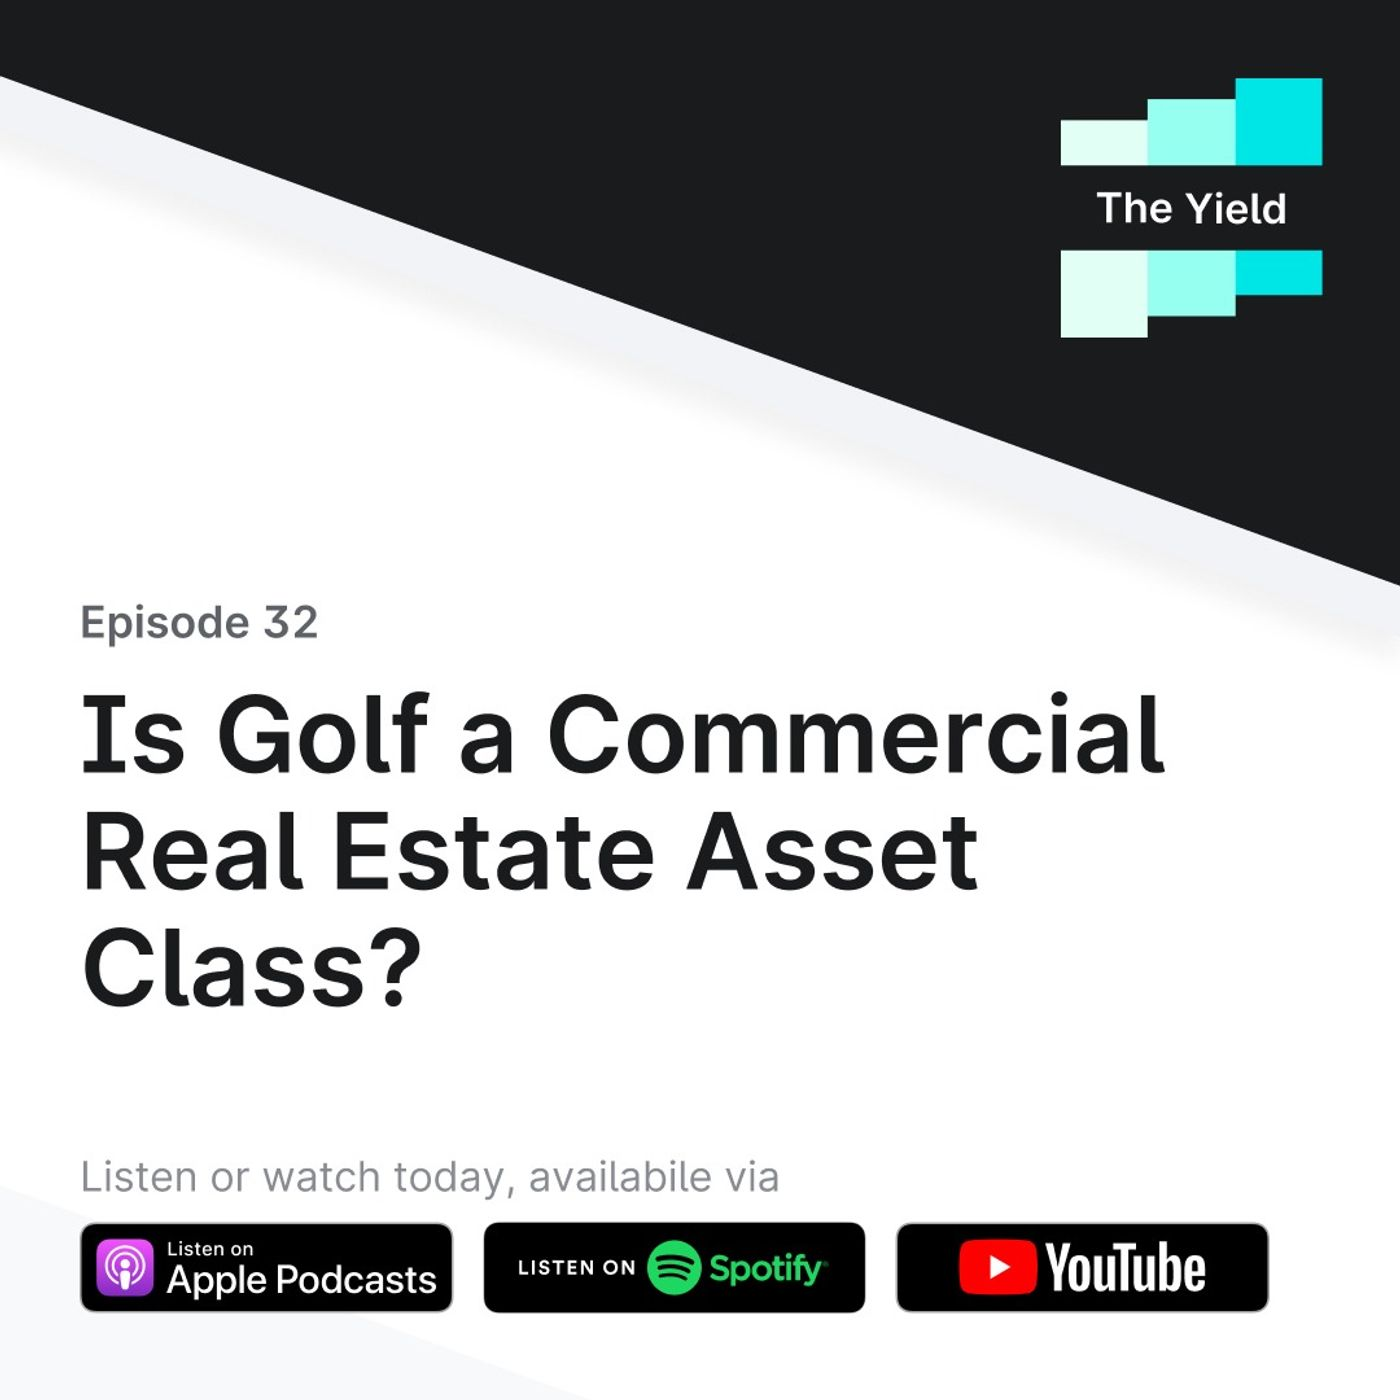 Is Golf a Commercial Real Estate Asset Class?